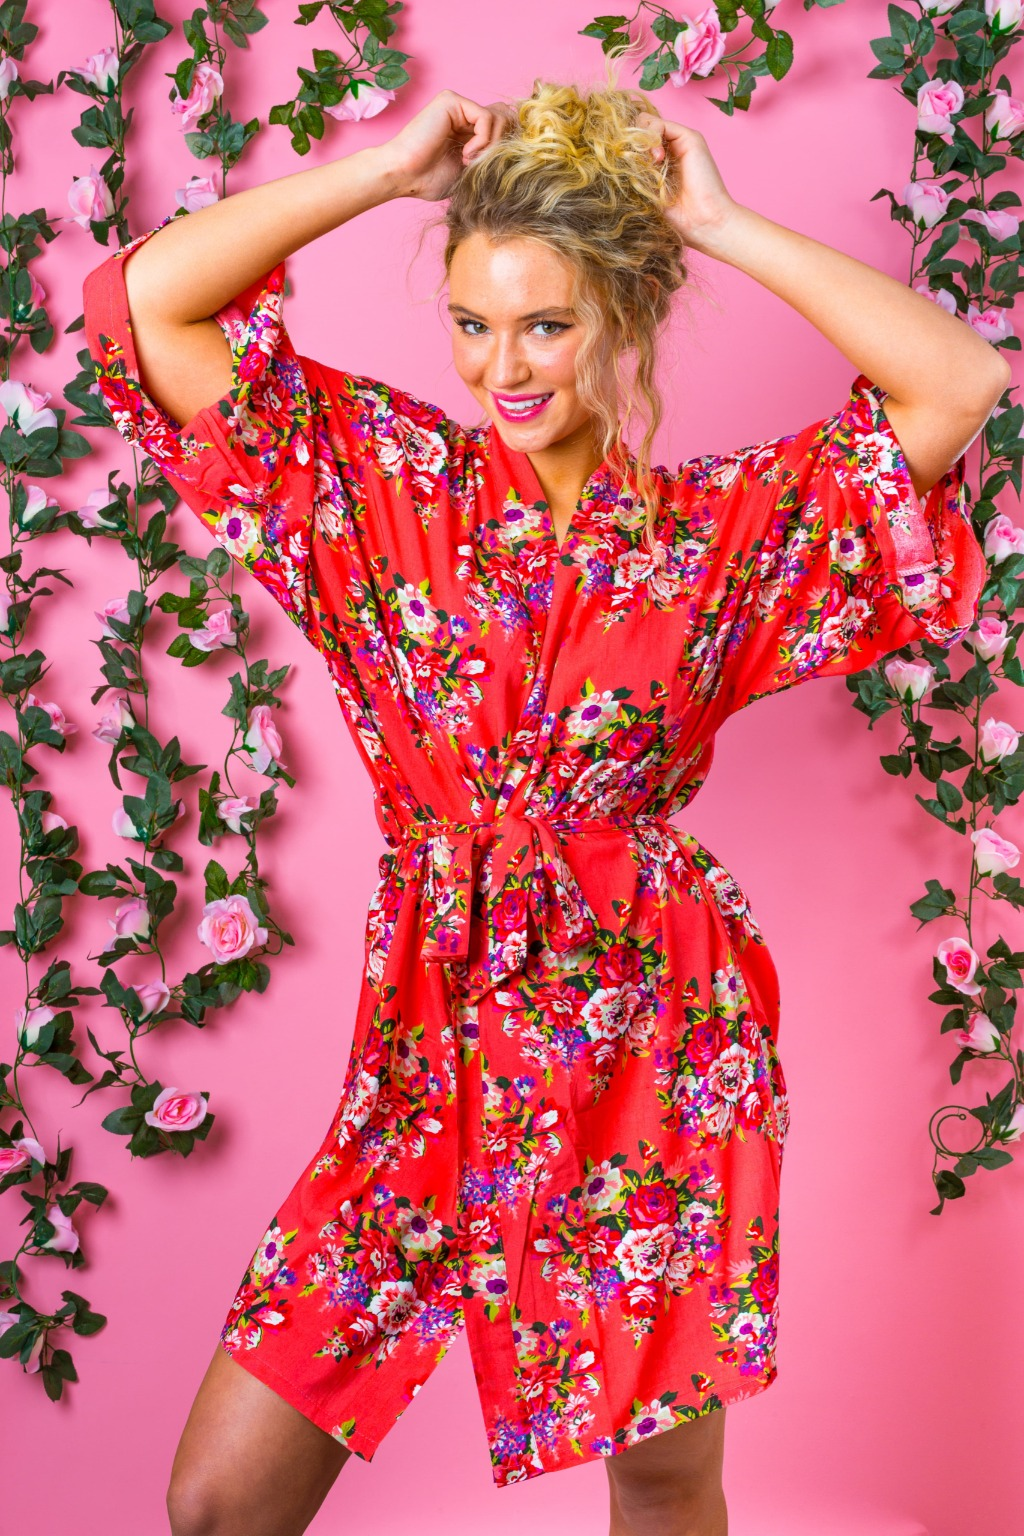 Our beautiful floral Bridesmaid Robe kimonos are 100% cotton, lightweight and breathable, not to mention utterly stylish. Perfect for